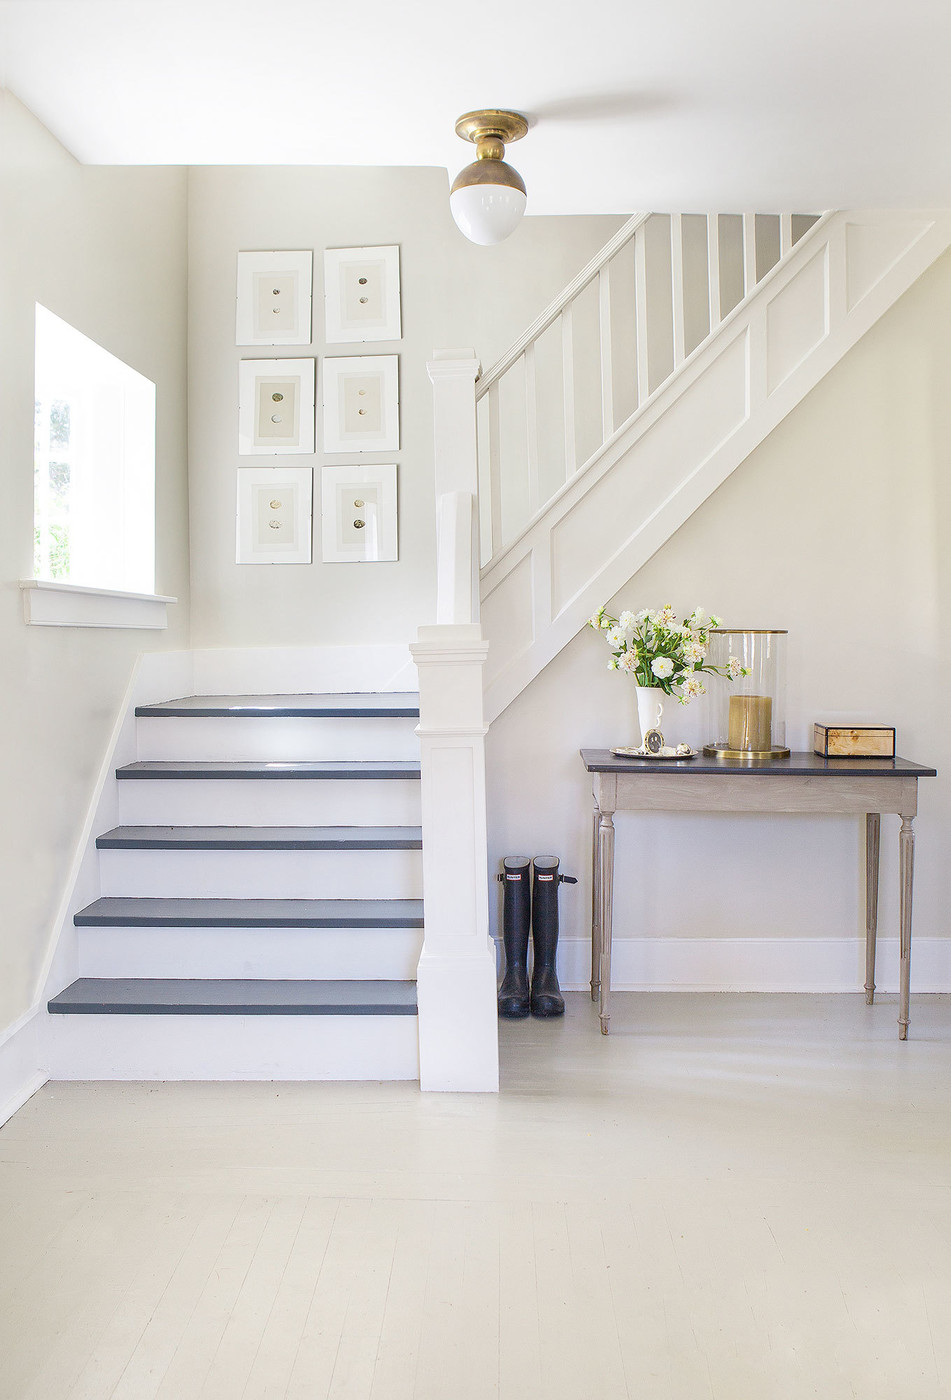 trim molding ideas for tall ceiling rooms - Minimalist Staircase s Design Ideas Remodel and